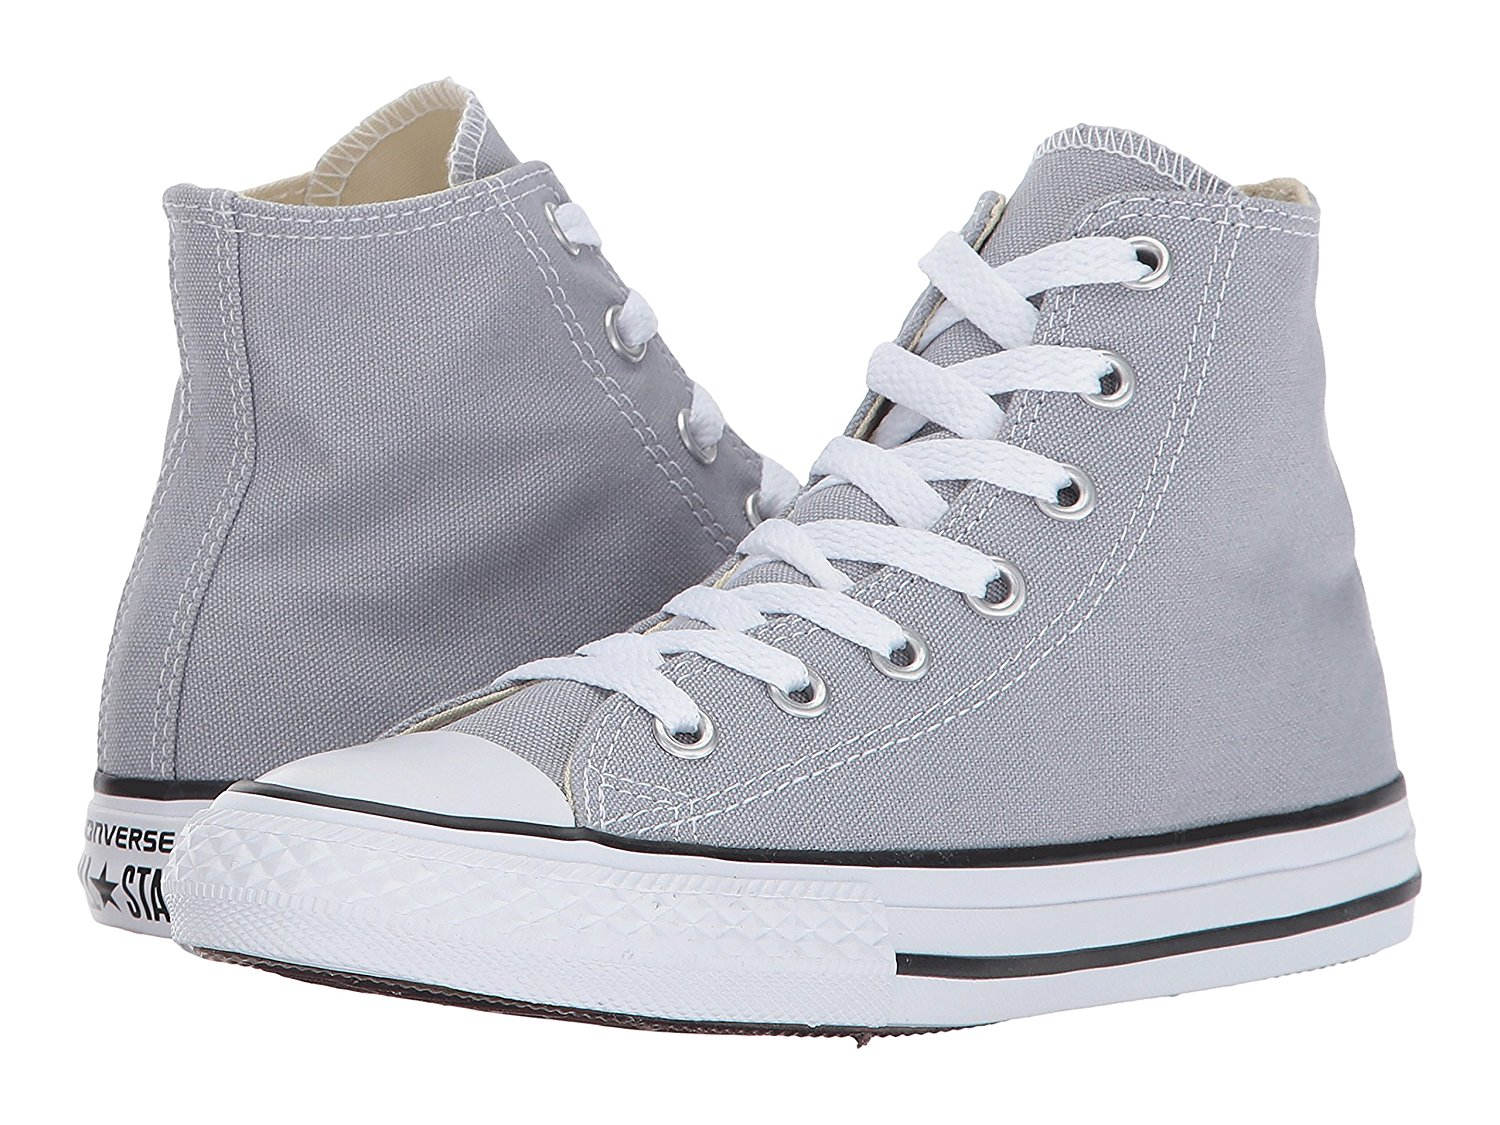 8d97045f7be6 Get Quotations · Converse Kids  Chuck Taylor All Star High Top Little Kid  Wolf Grey Kids Shoes